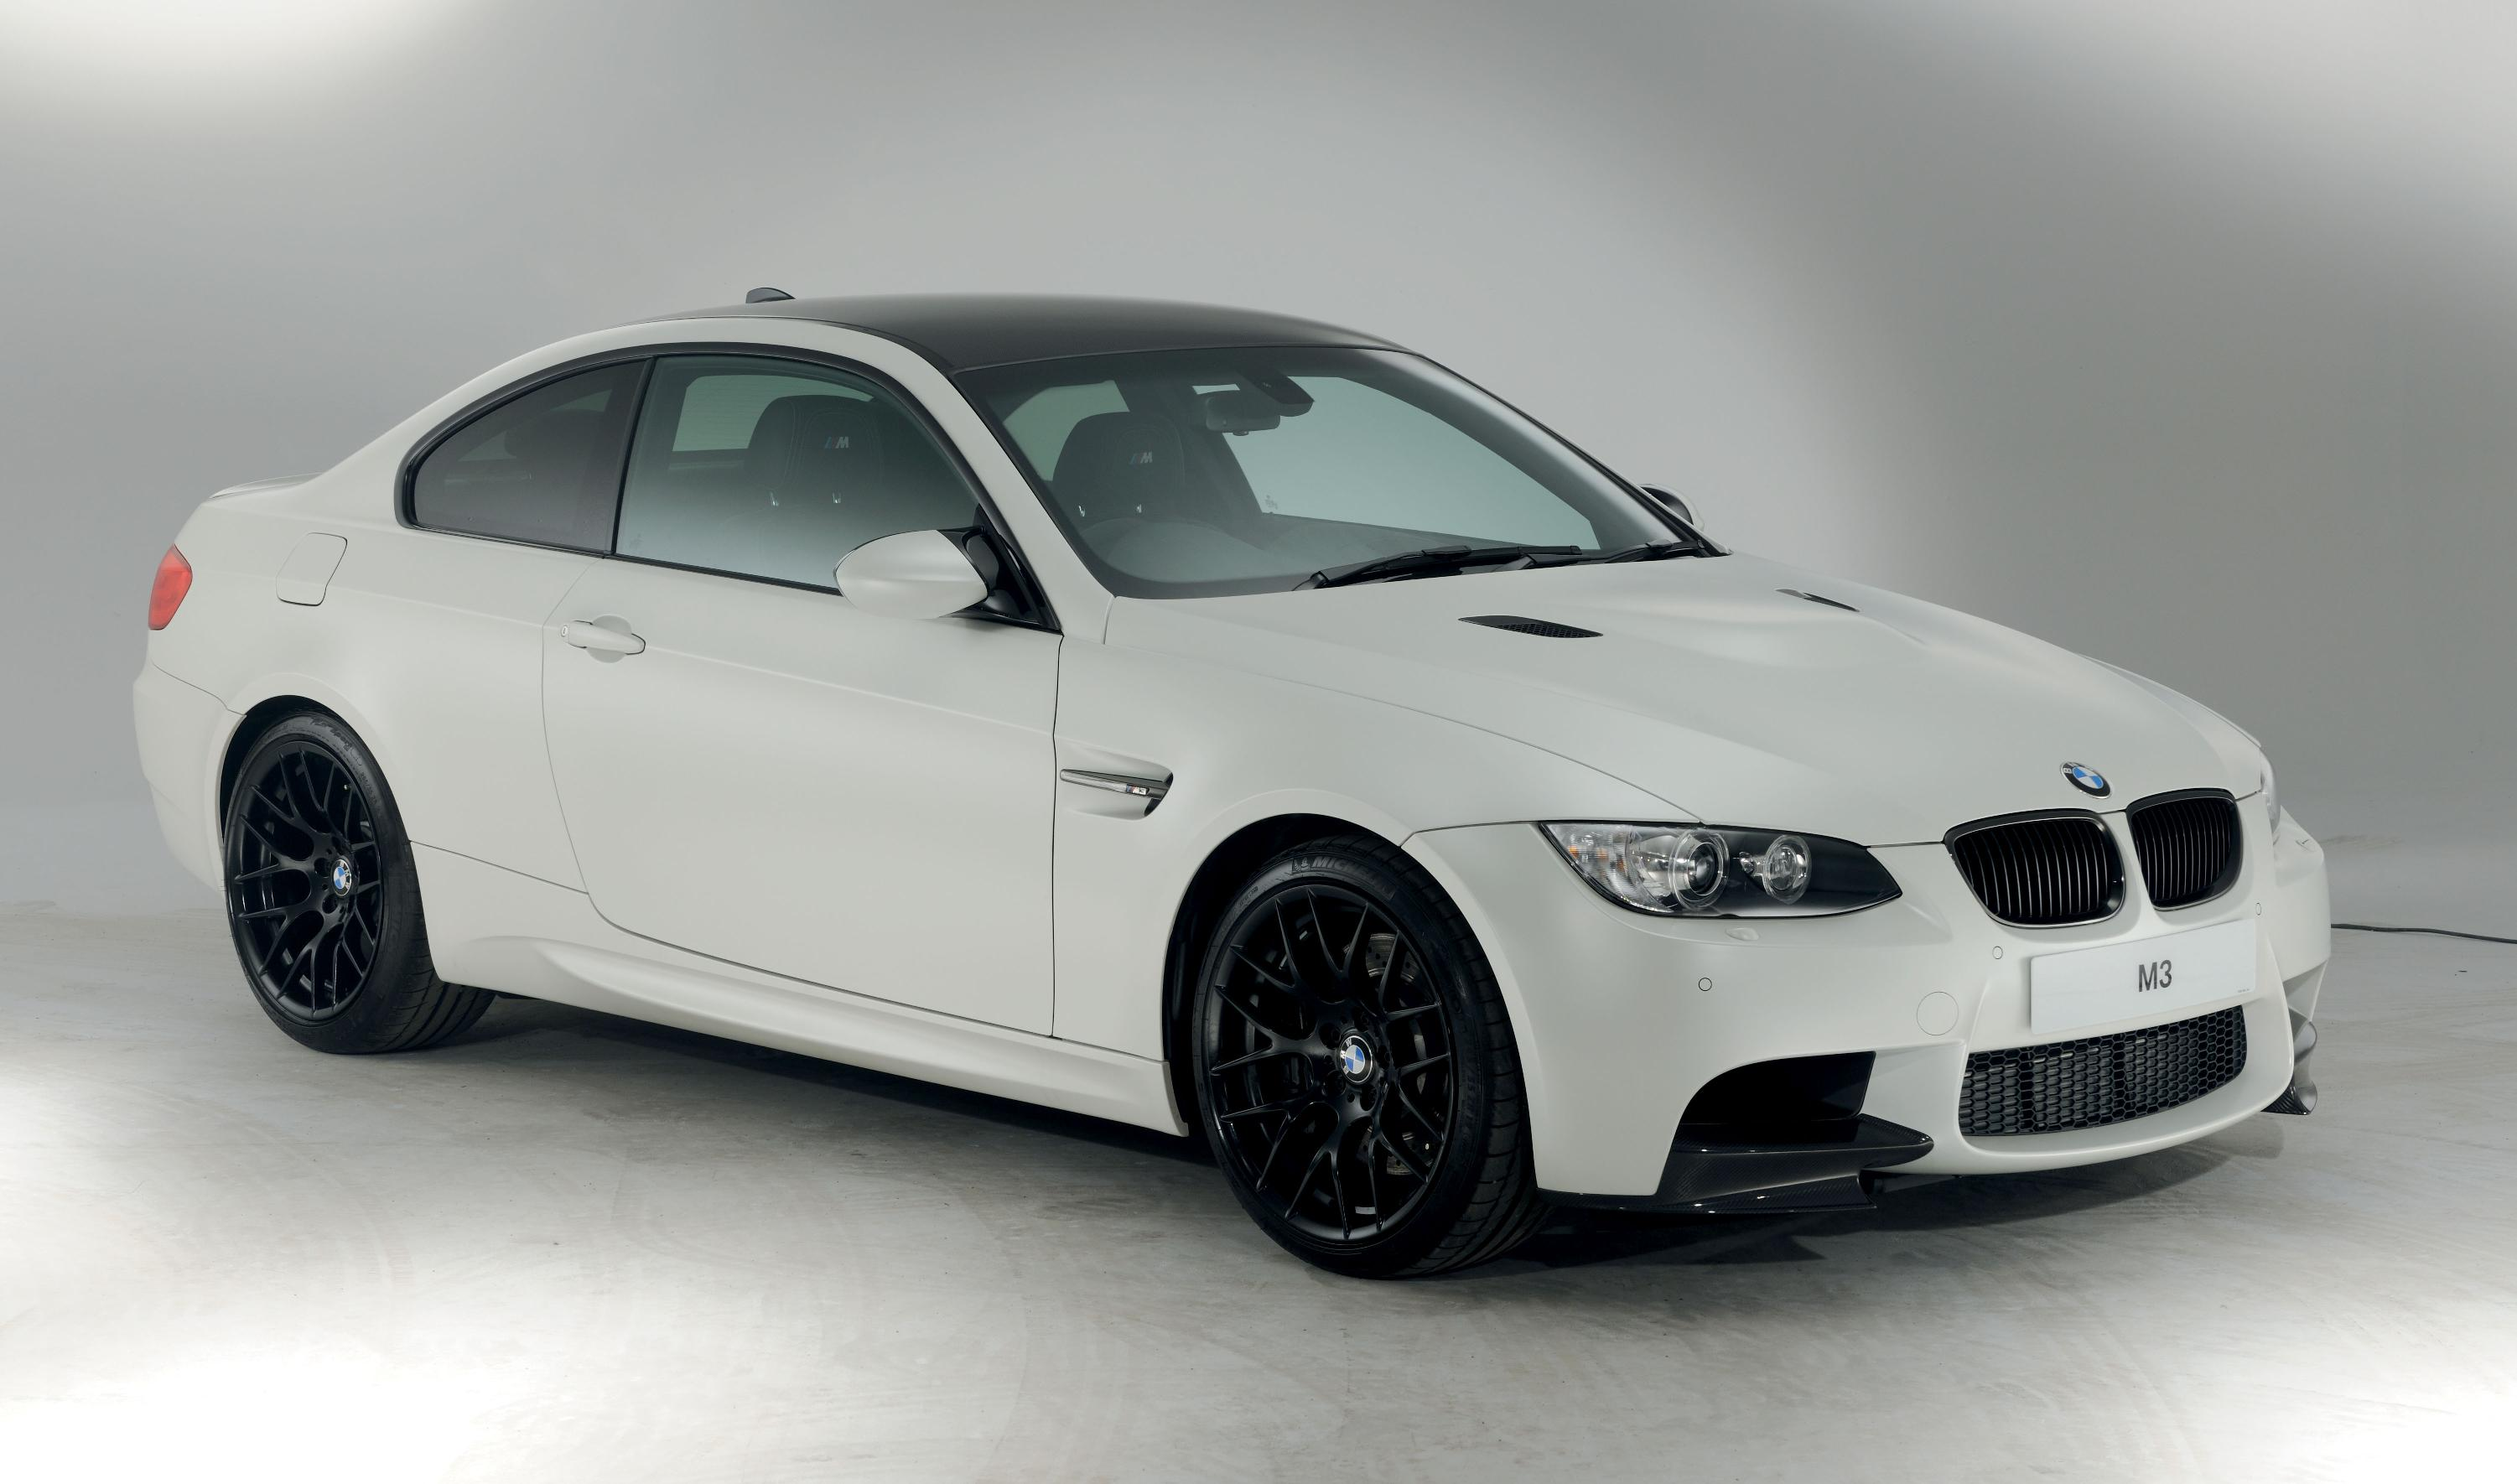 BMW Car Picture And Wallpaper 3002x1770